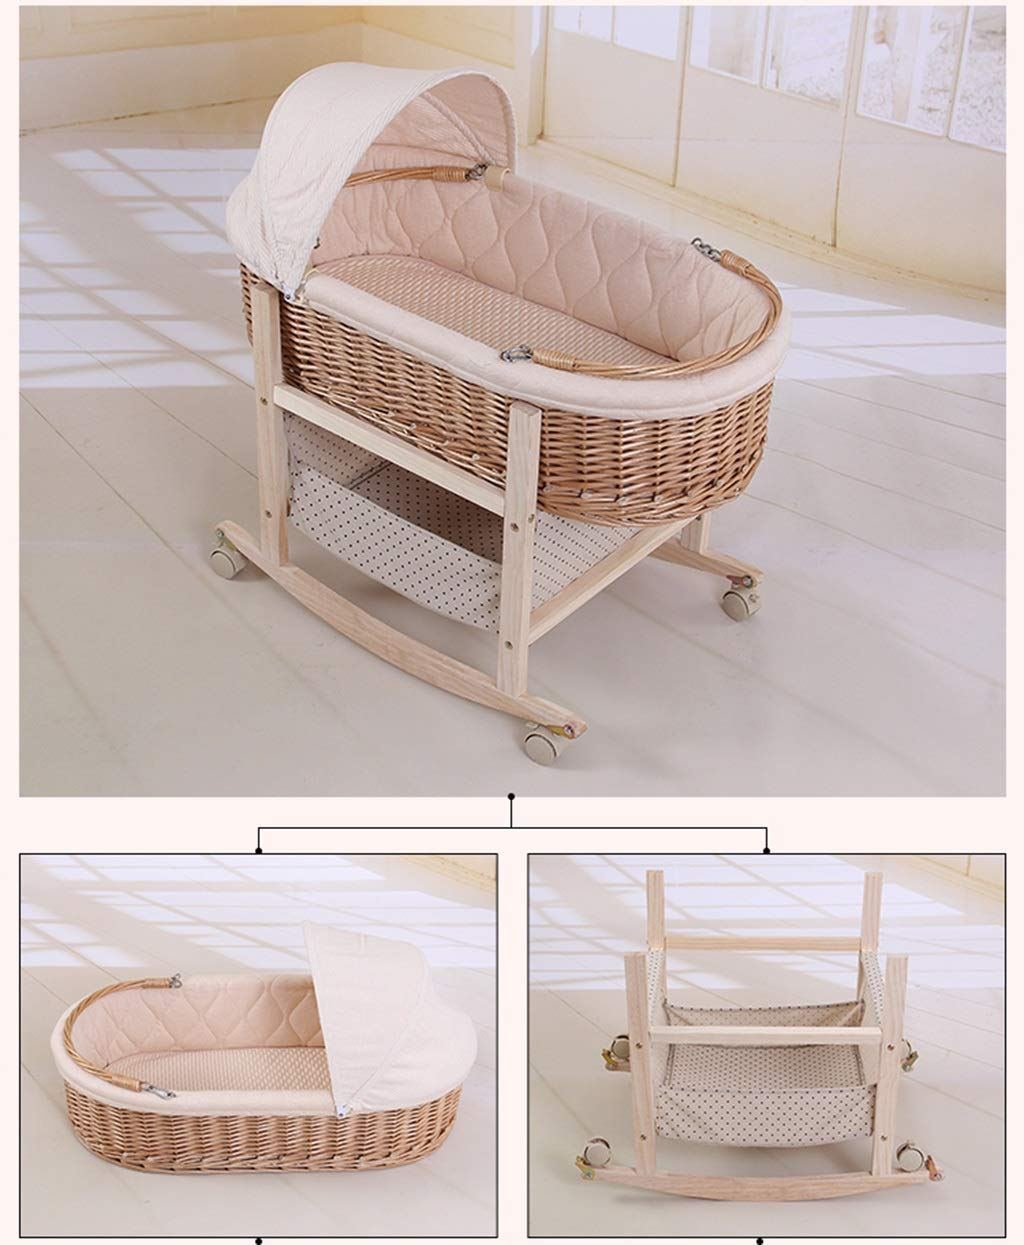 It Can Move Baby Cot, Multifunction Portable Cradle Portable Car Load Baby Travel Bed, 60 * 90CM (Size : 90 * 60CM) Zhao ♥ Product Name: Removable Baby Crib// Size: 60*90CM//Material: Wood; ♥Characteristics: Sturdy detachable beam, can be pushed and pushed double mode, mosquito net and sunshade, lower storage pocket, high quality colored cotton comfortable mattress, soft and smooth, giving baby comfort and enjoyment; ♥Bionic uterus design, give your baby enough safety, let the baby sleep sweetly; 3